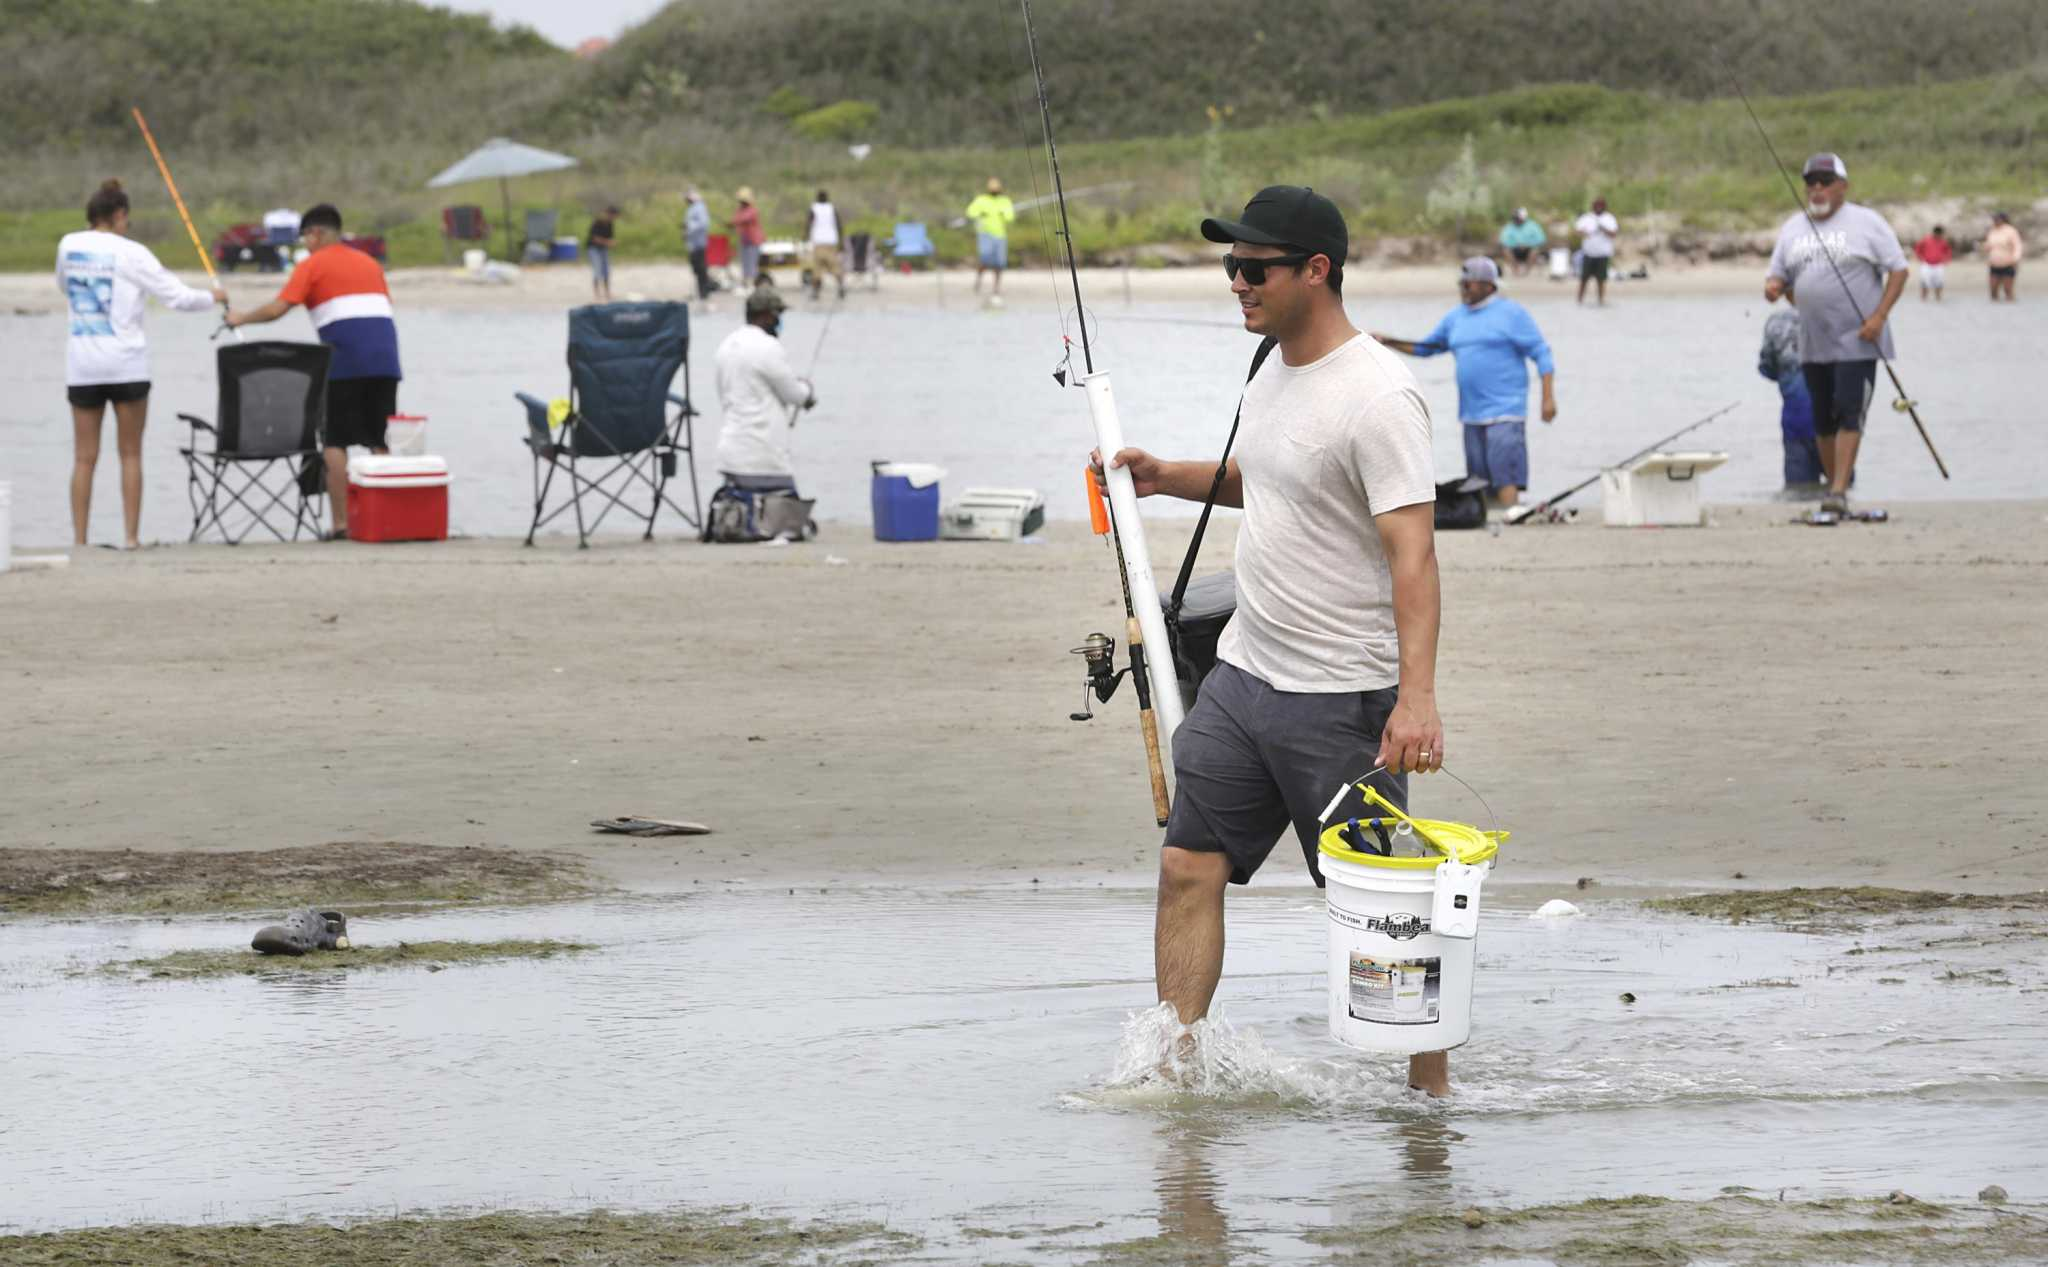 Popular Texas beaches see curfew, vehicle ban as COVID rapidly spreads